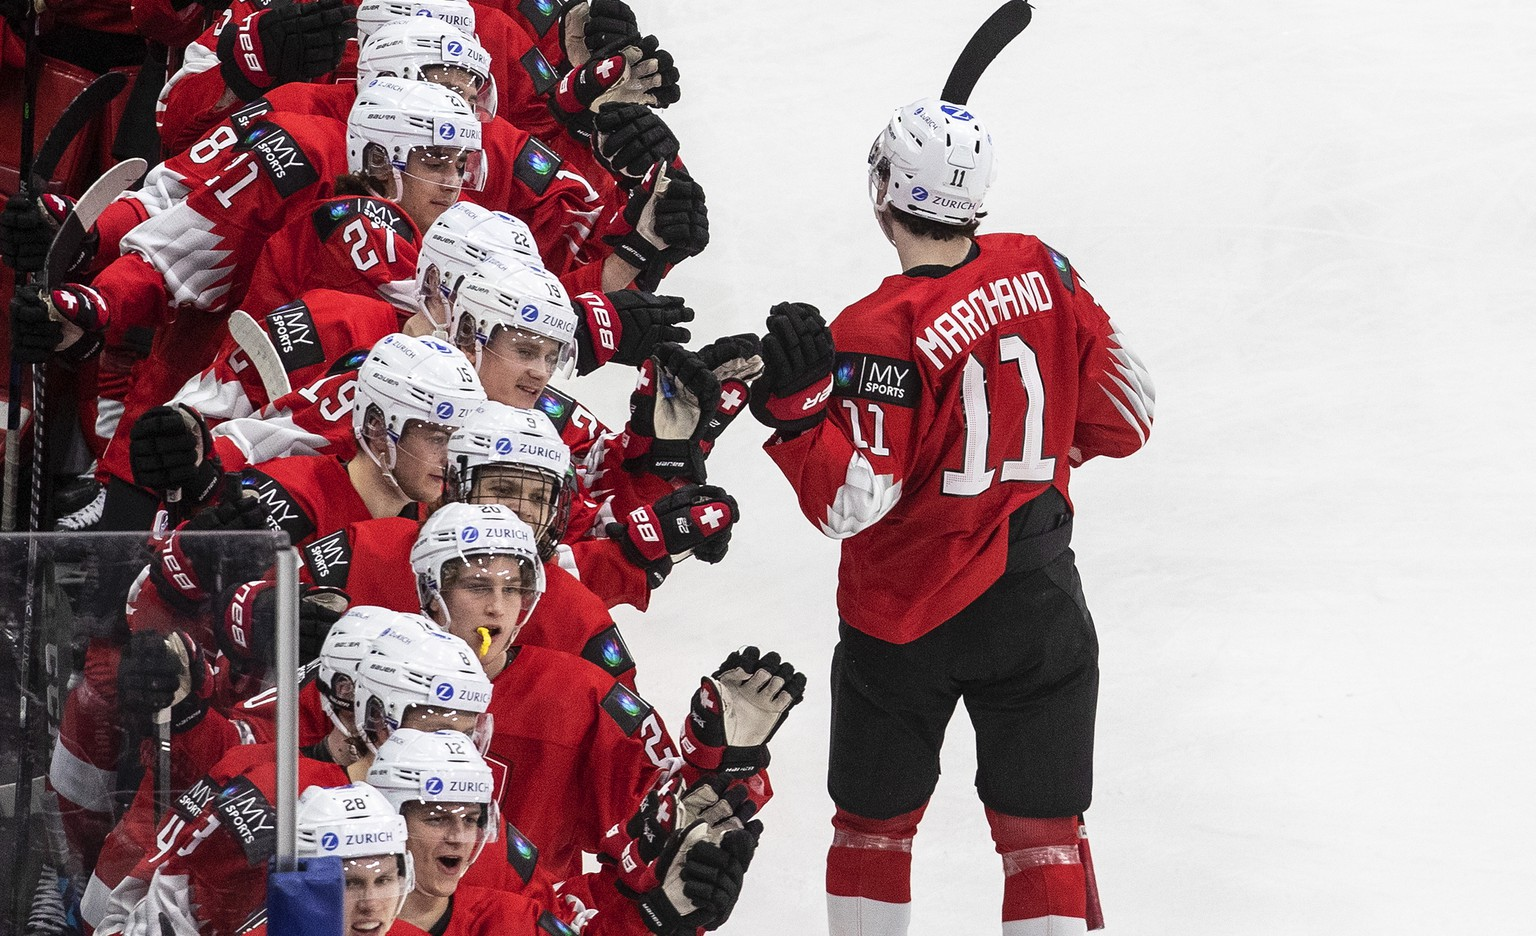 Switzerland's Lionel Marchand (11) celebrates his goal against Austria with teammates during the third period of a game in preparation for the IIHF World Junior Hockey Championships, in Edmonton, Alberta, Tuesday, Dec. 22, 2020. (Jason Franson/The Canadian Press via AP)